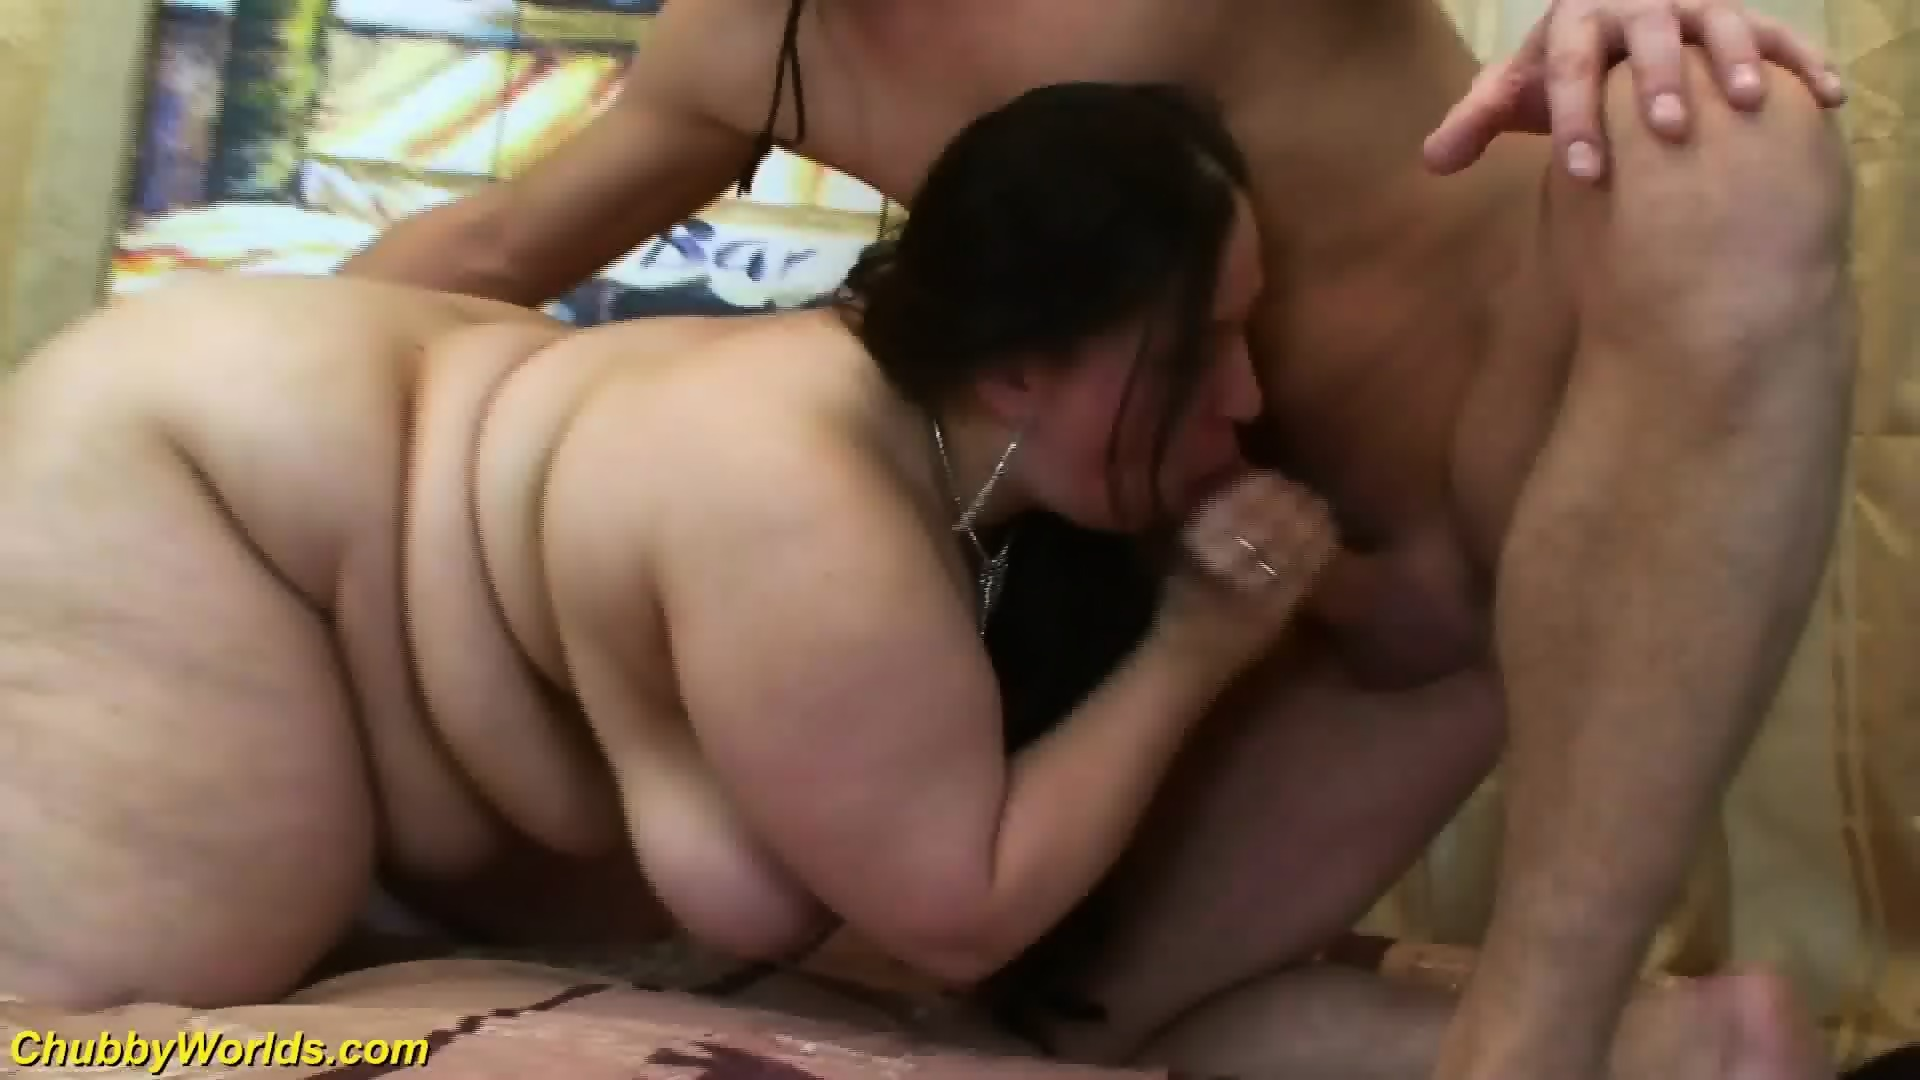 dirty anal pussy creampie gangbang